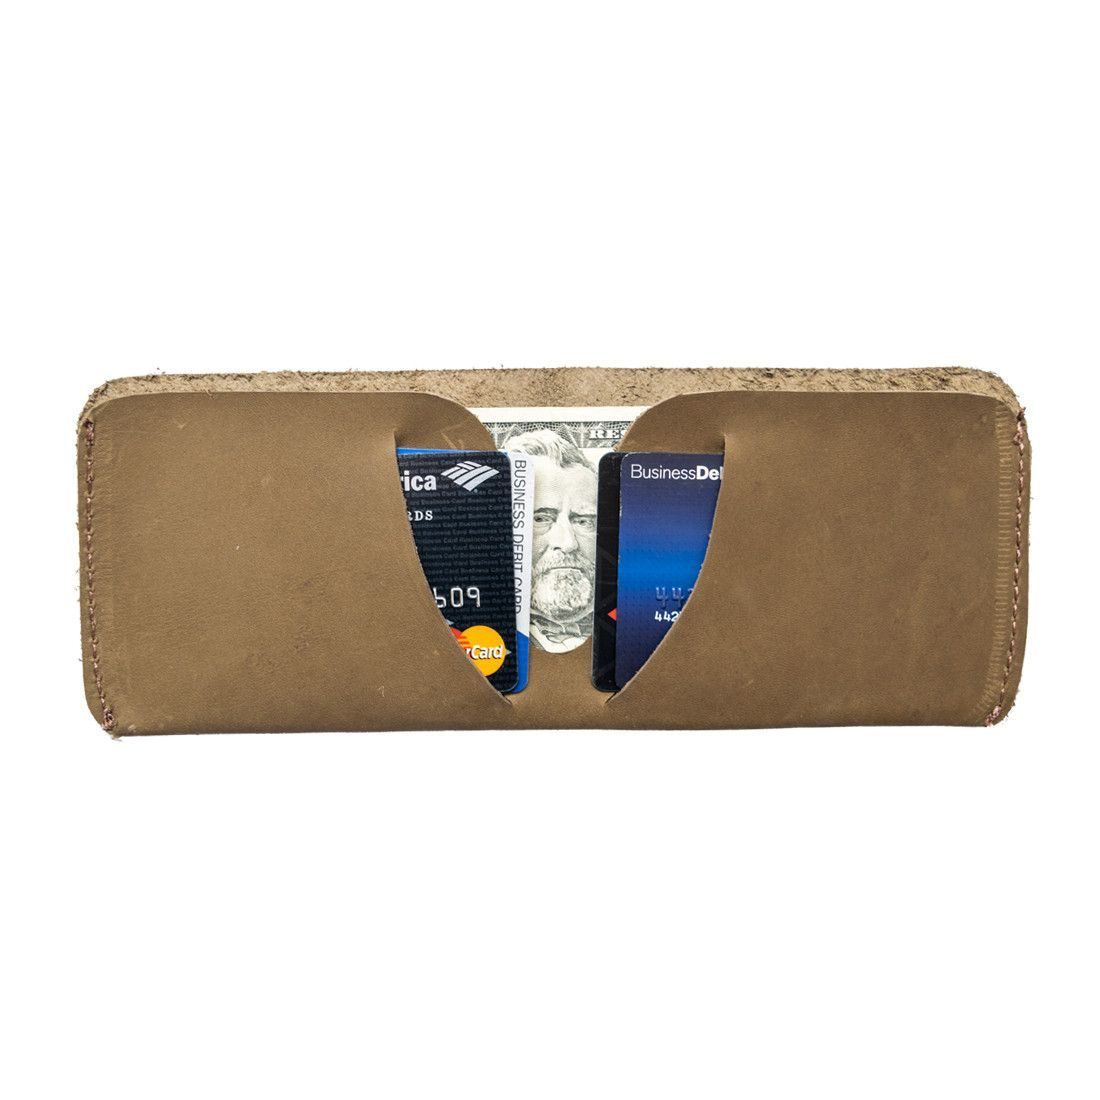 Handmade from a Single Piece of Thick, Durable Leather Attractive Vintage Style Holds Credit Cards and Bills Hand Cut :: Hand Sewn Lifetime Guarantee SPECIFICATIONS Dimensions: 3.25 x 7.5 inches Mater